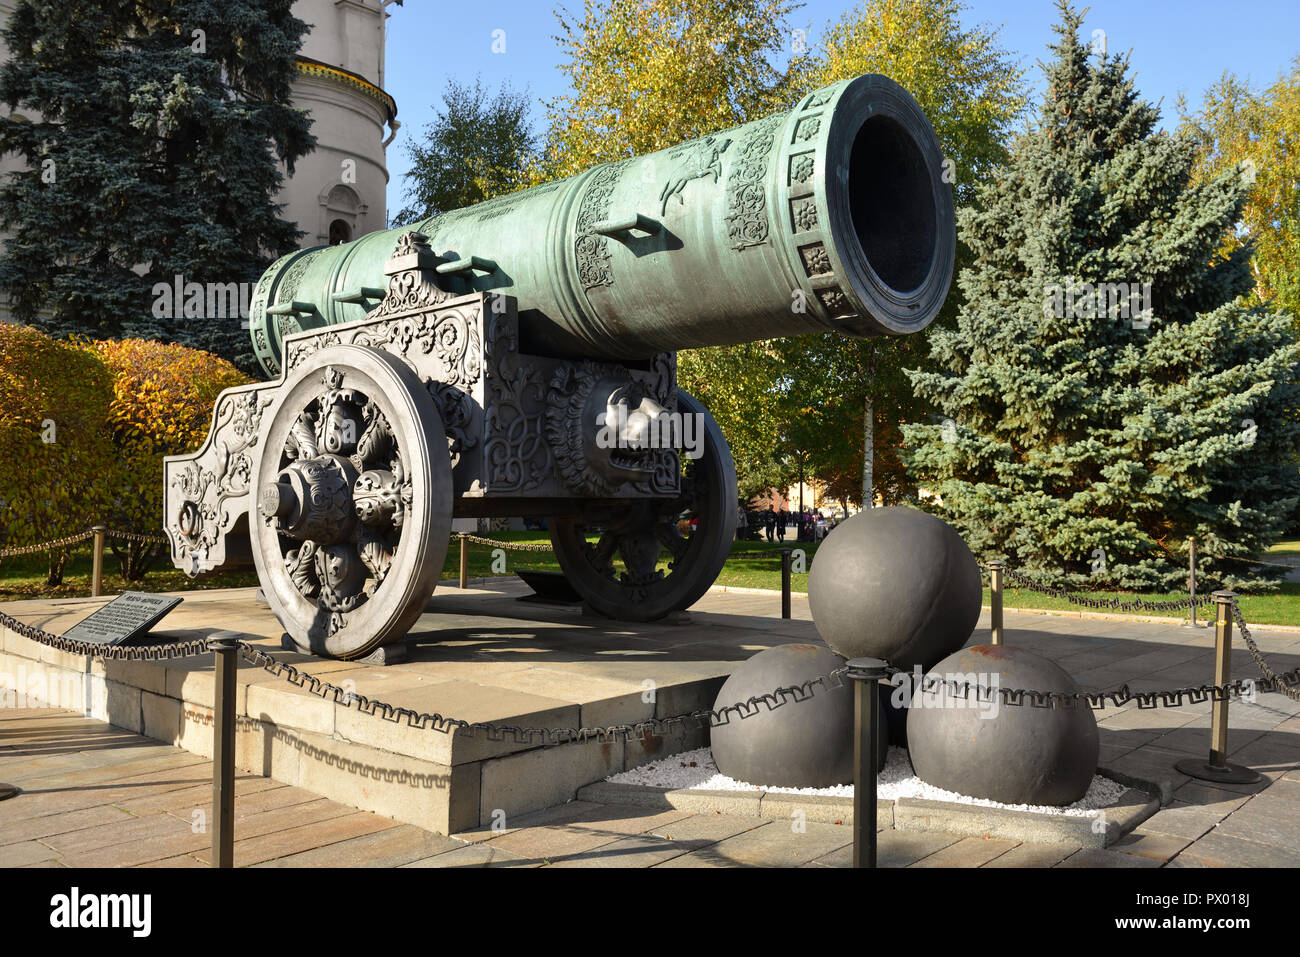 Tsar Cannon (1586), calibre of 890 mm, weight about 40 ton, length  5,34 m. Its surface is adorned with cast figured friezes, vegetation ornament, - Stock Image